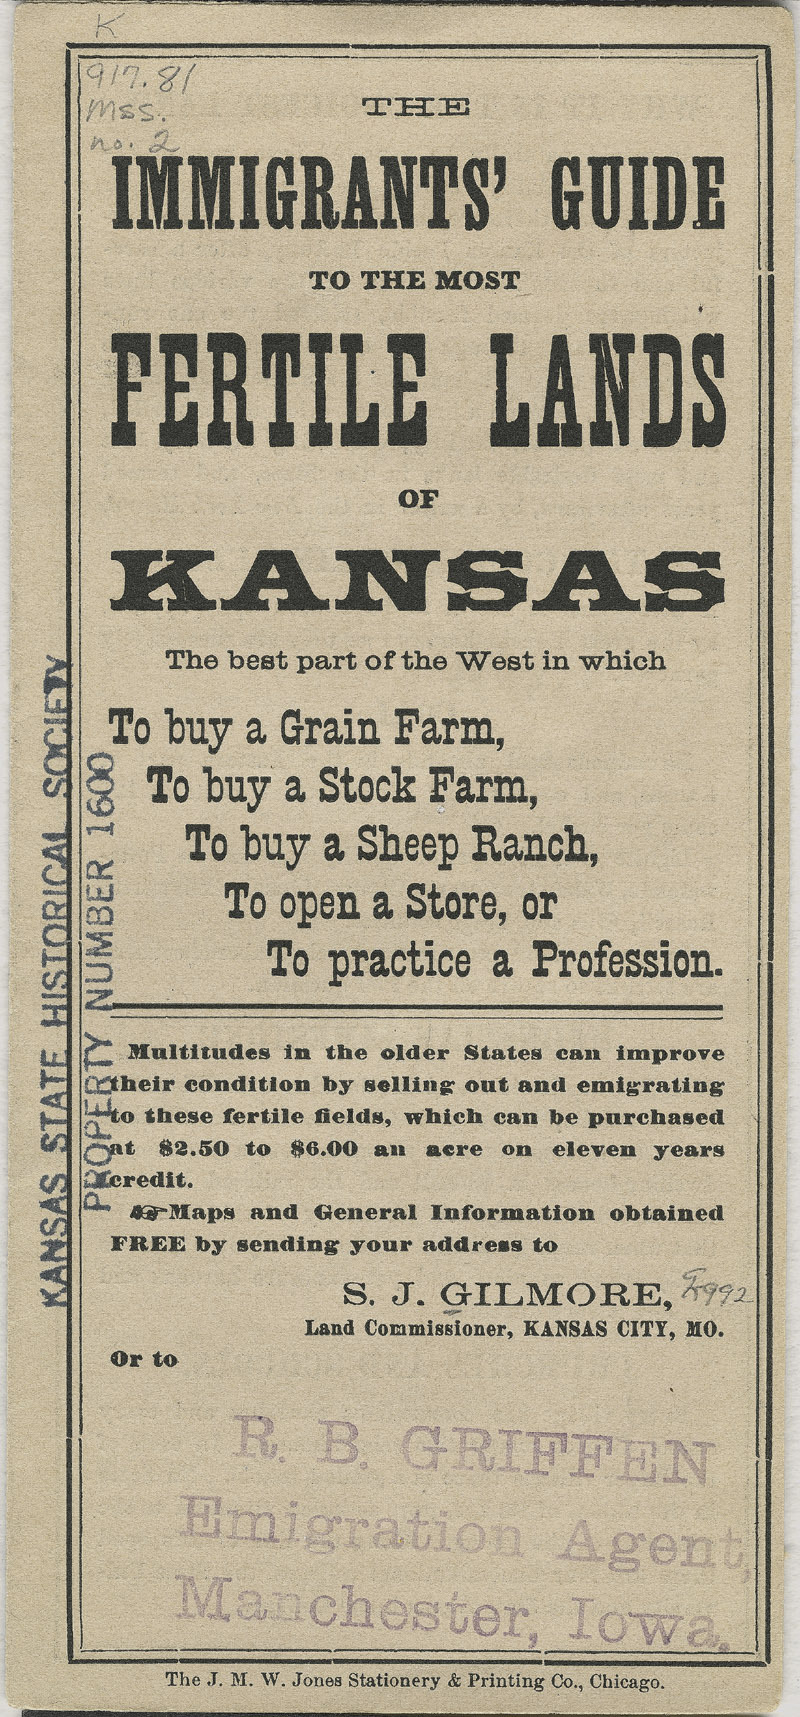 Immigrants' guide to the most fertile lands of Kansas - pg. [1] cover